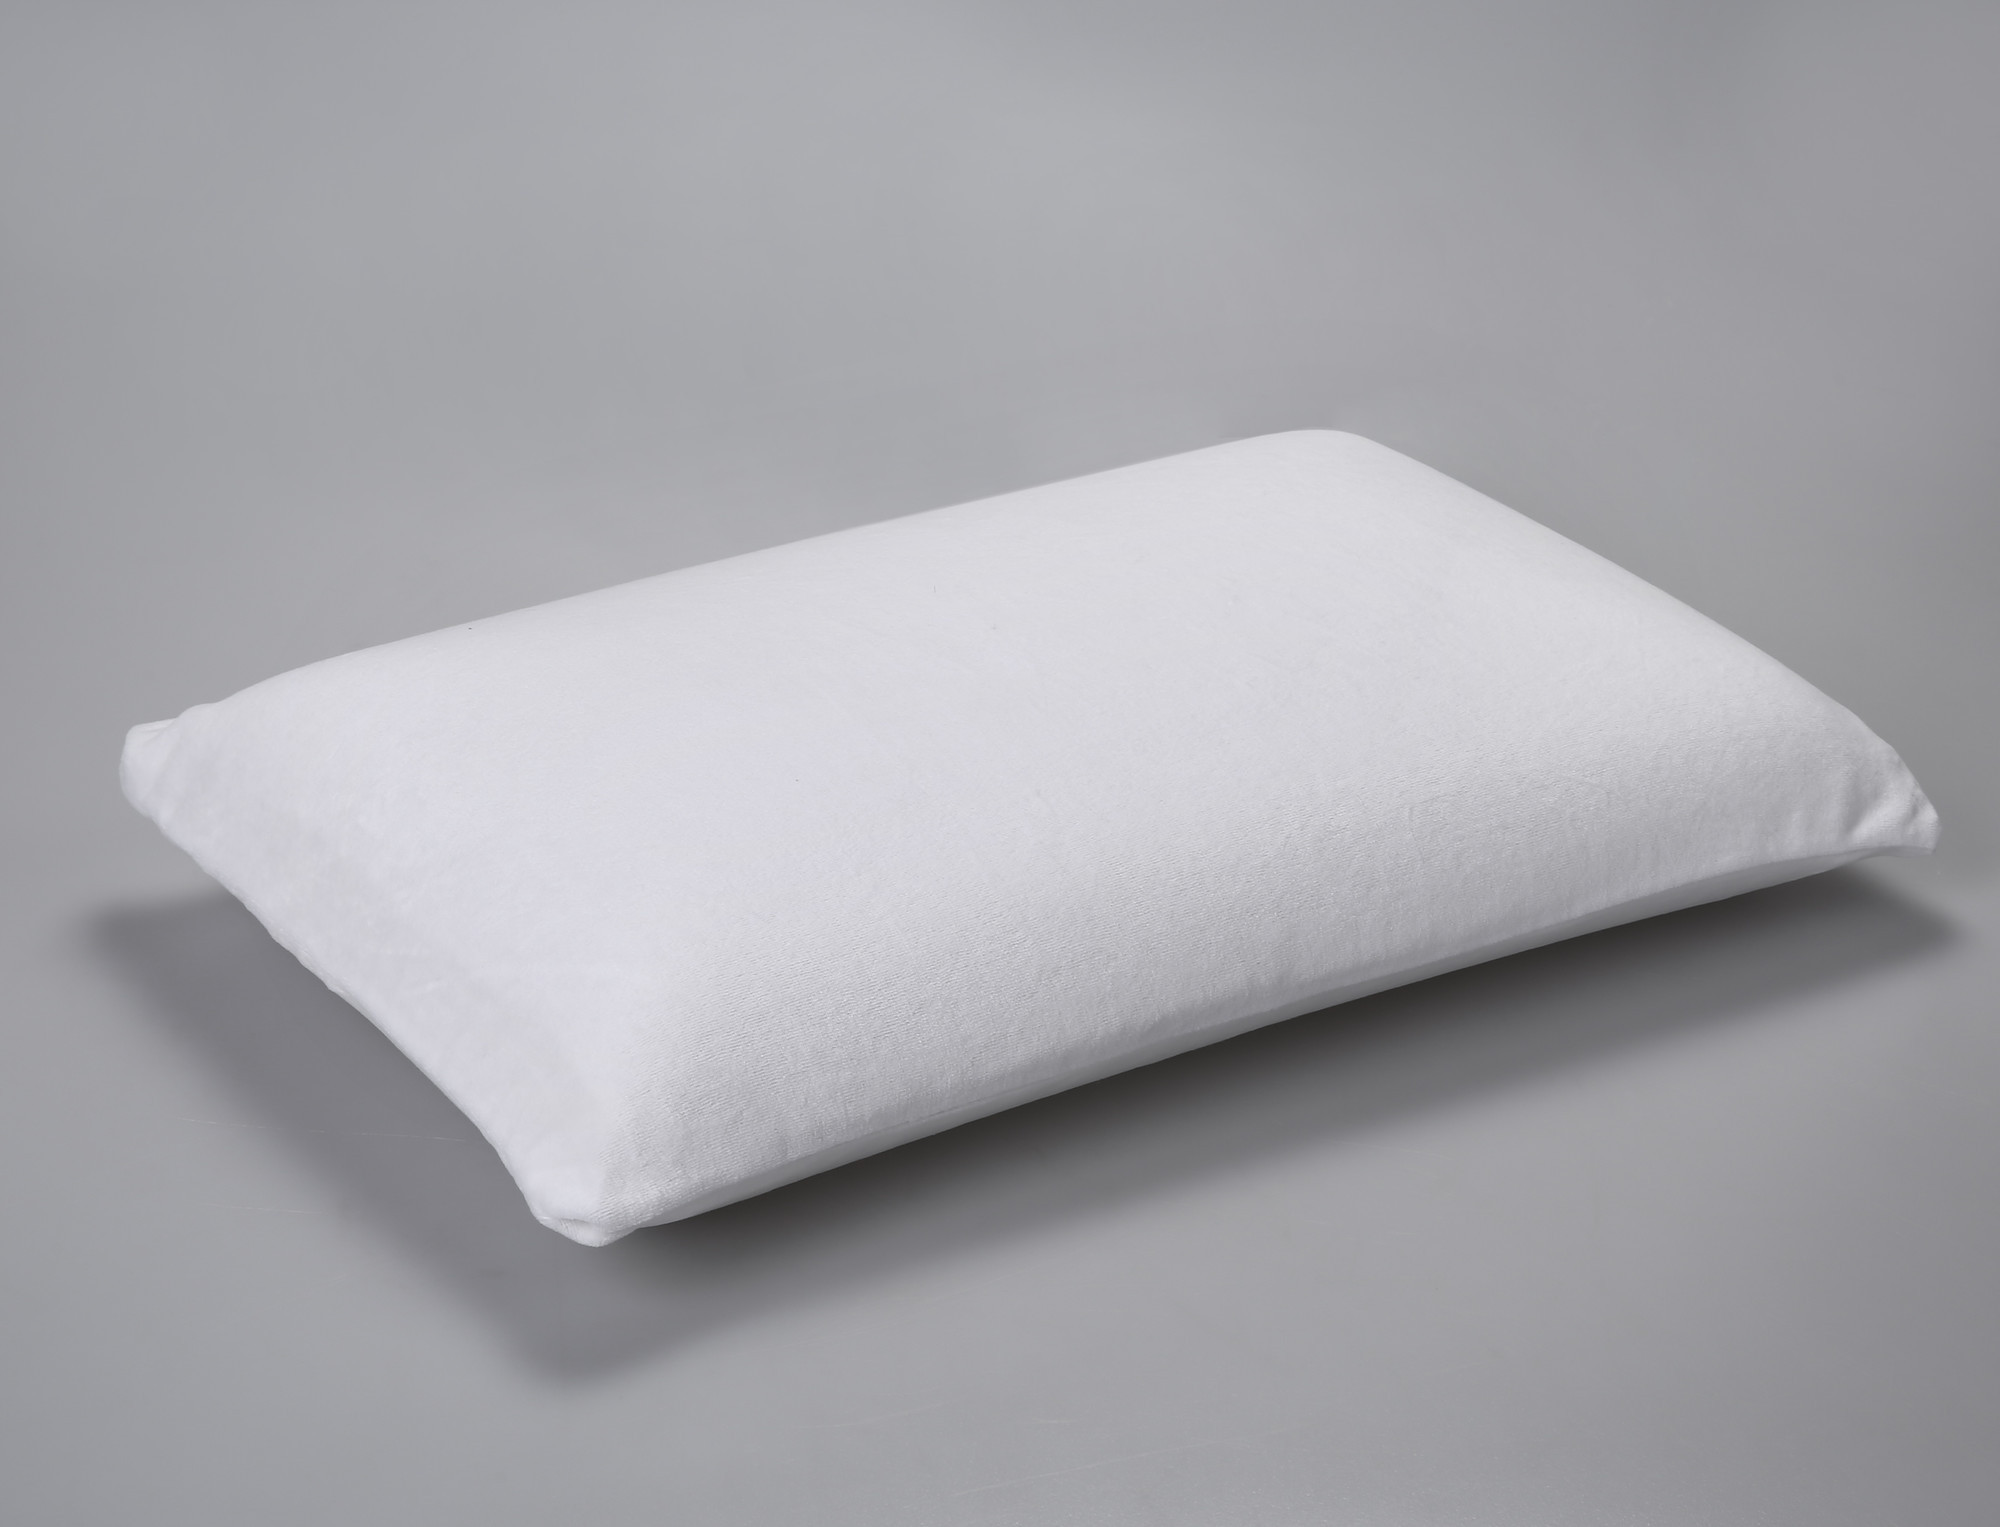 sleep easy kids pillow low profile soft feel talalay latex pillow  - sku bicn sleep easy kids pillow low profile soft feel talalay latexpillow is also sometimes listed under the following manufacturer numberssems